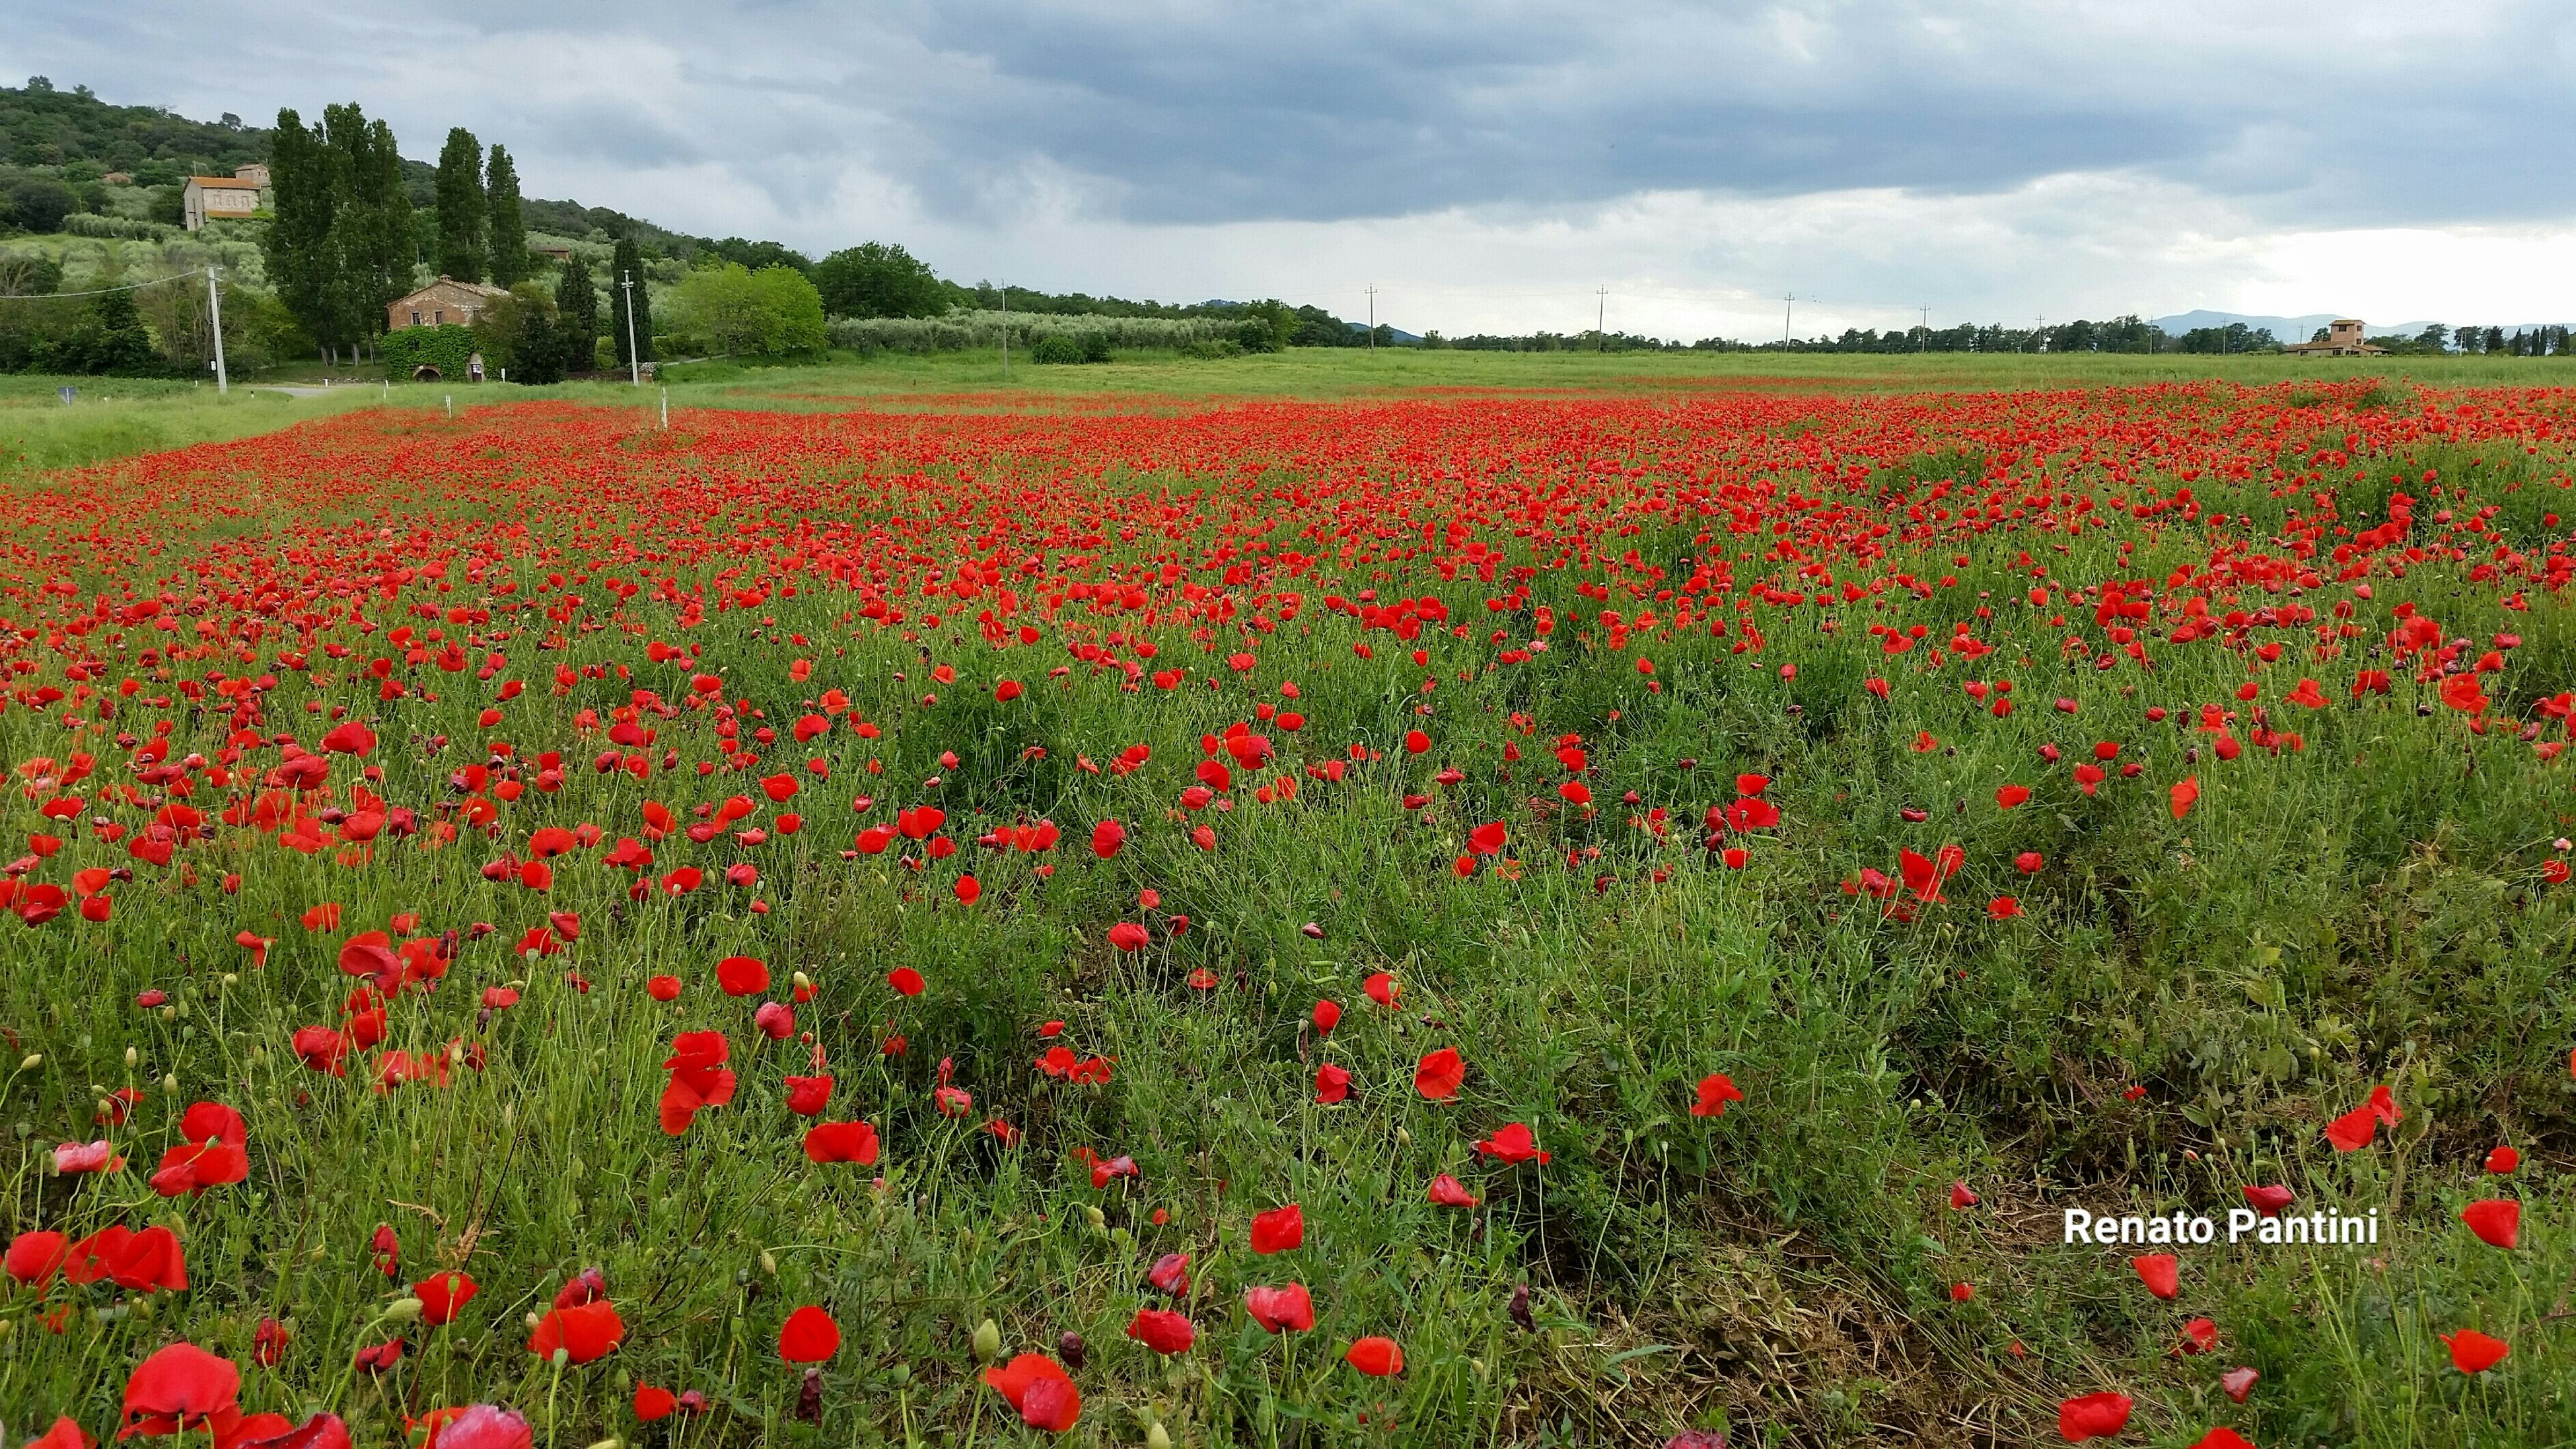 flower, freshness, growth, beauty in nature, red, field, fragility, nature, poppy, blooming, sky, abundance, plant, cloud - sky, landscape, petal, flowerbed, tranquil scene, scenics, tranquility